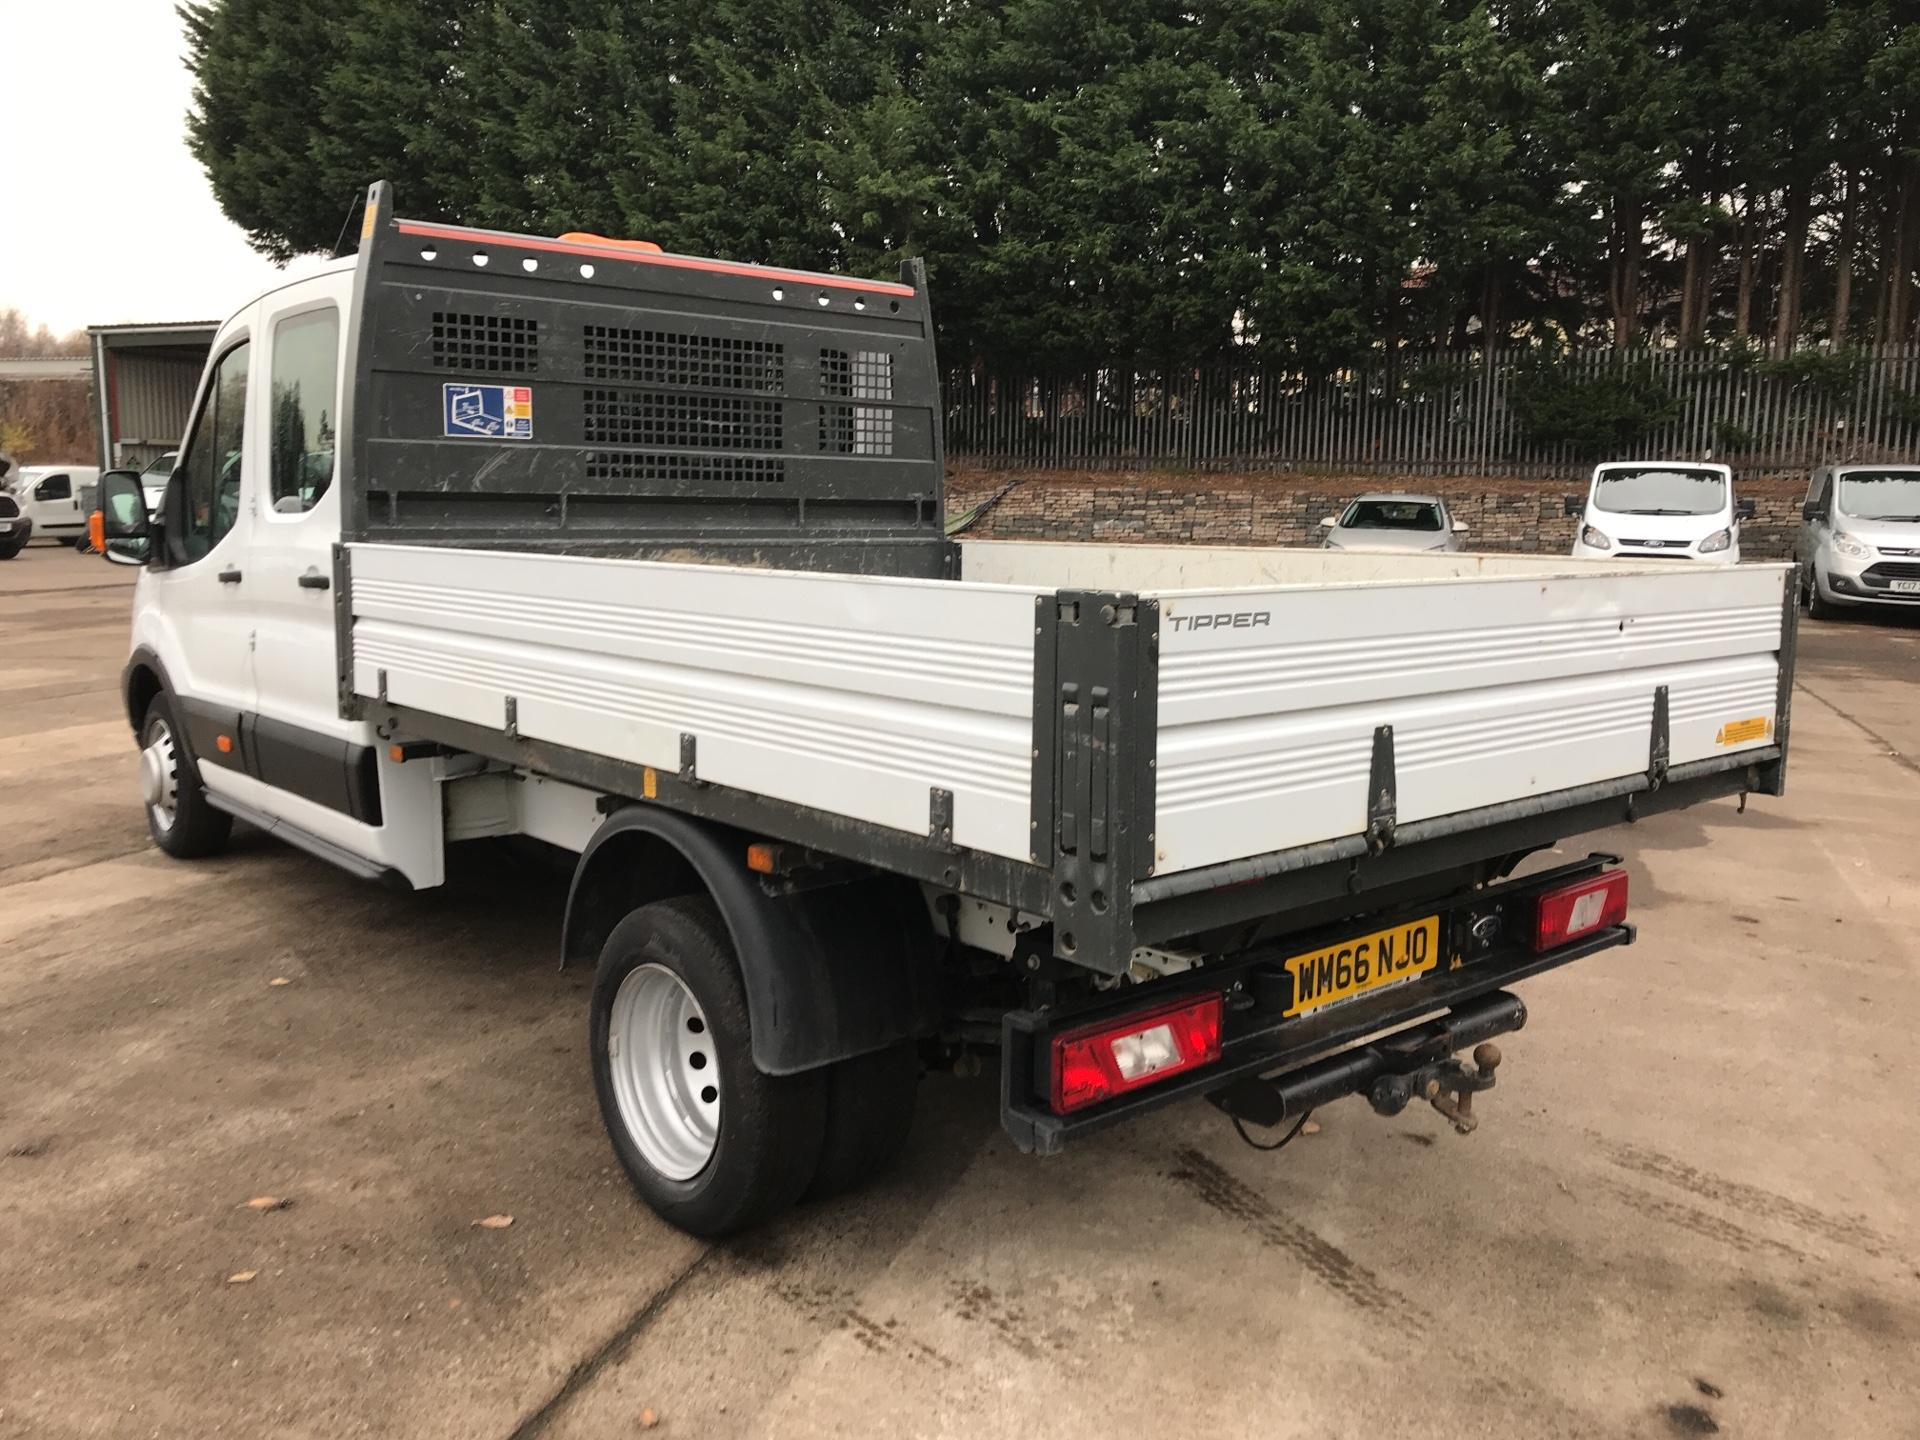 2016 Ford Transit  350 L3 DOUBLE CAB TIPPER 130PS EURO 5 (WM66NJO) Image 5